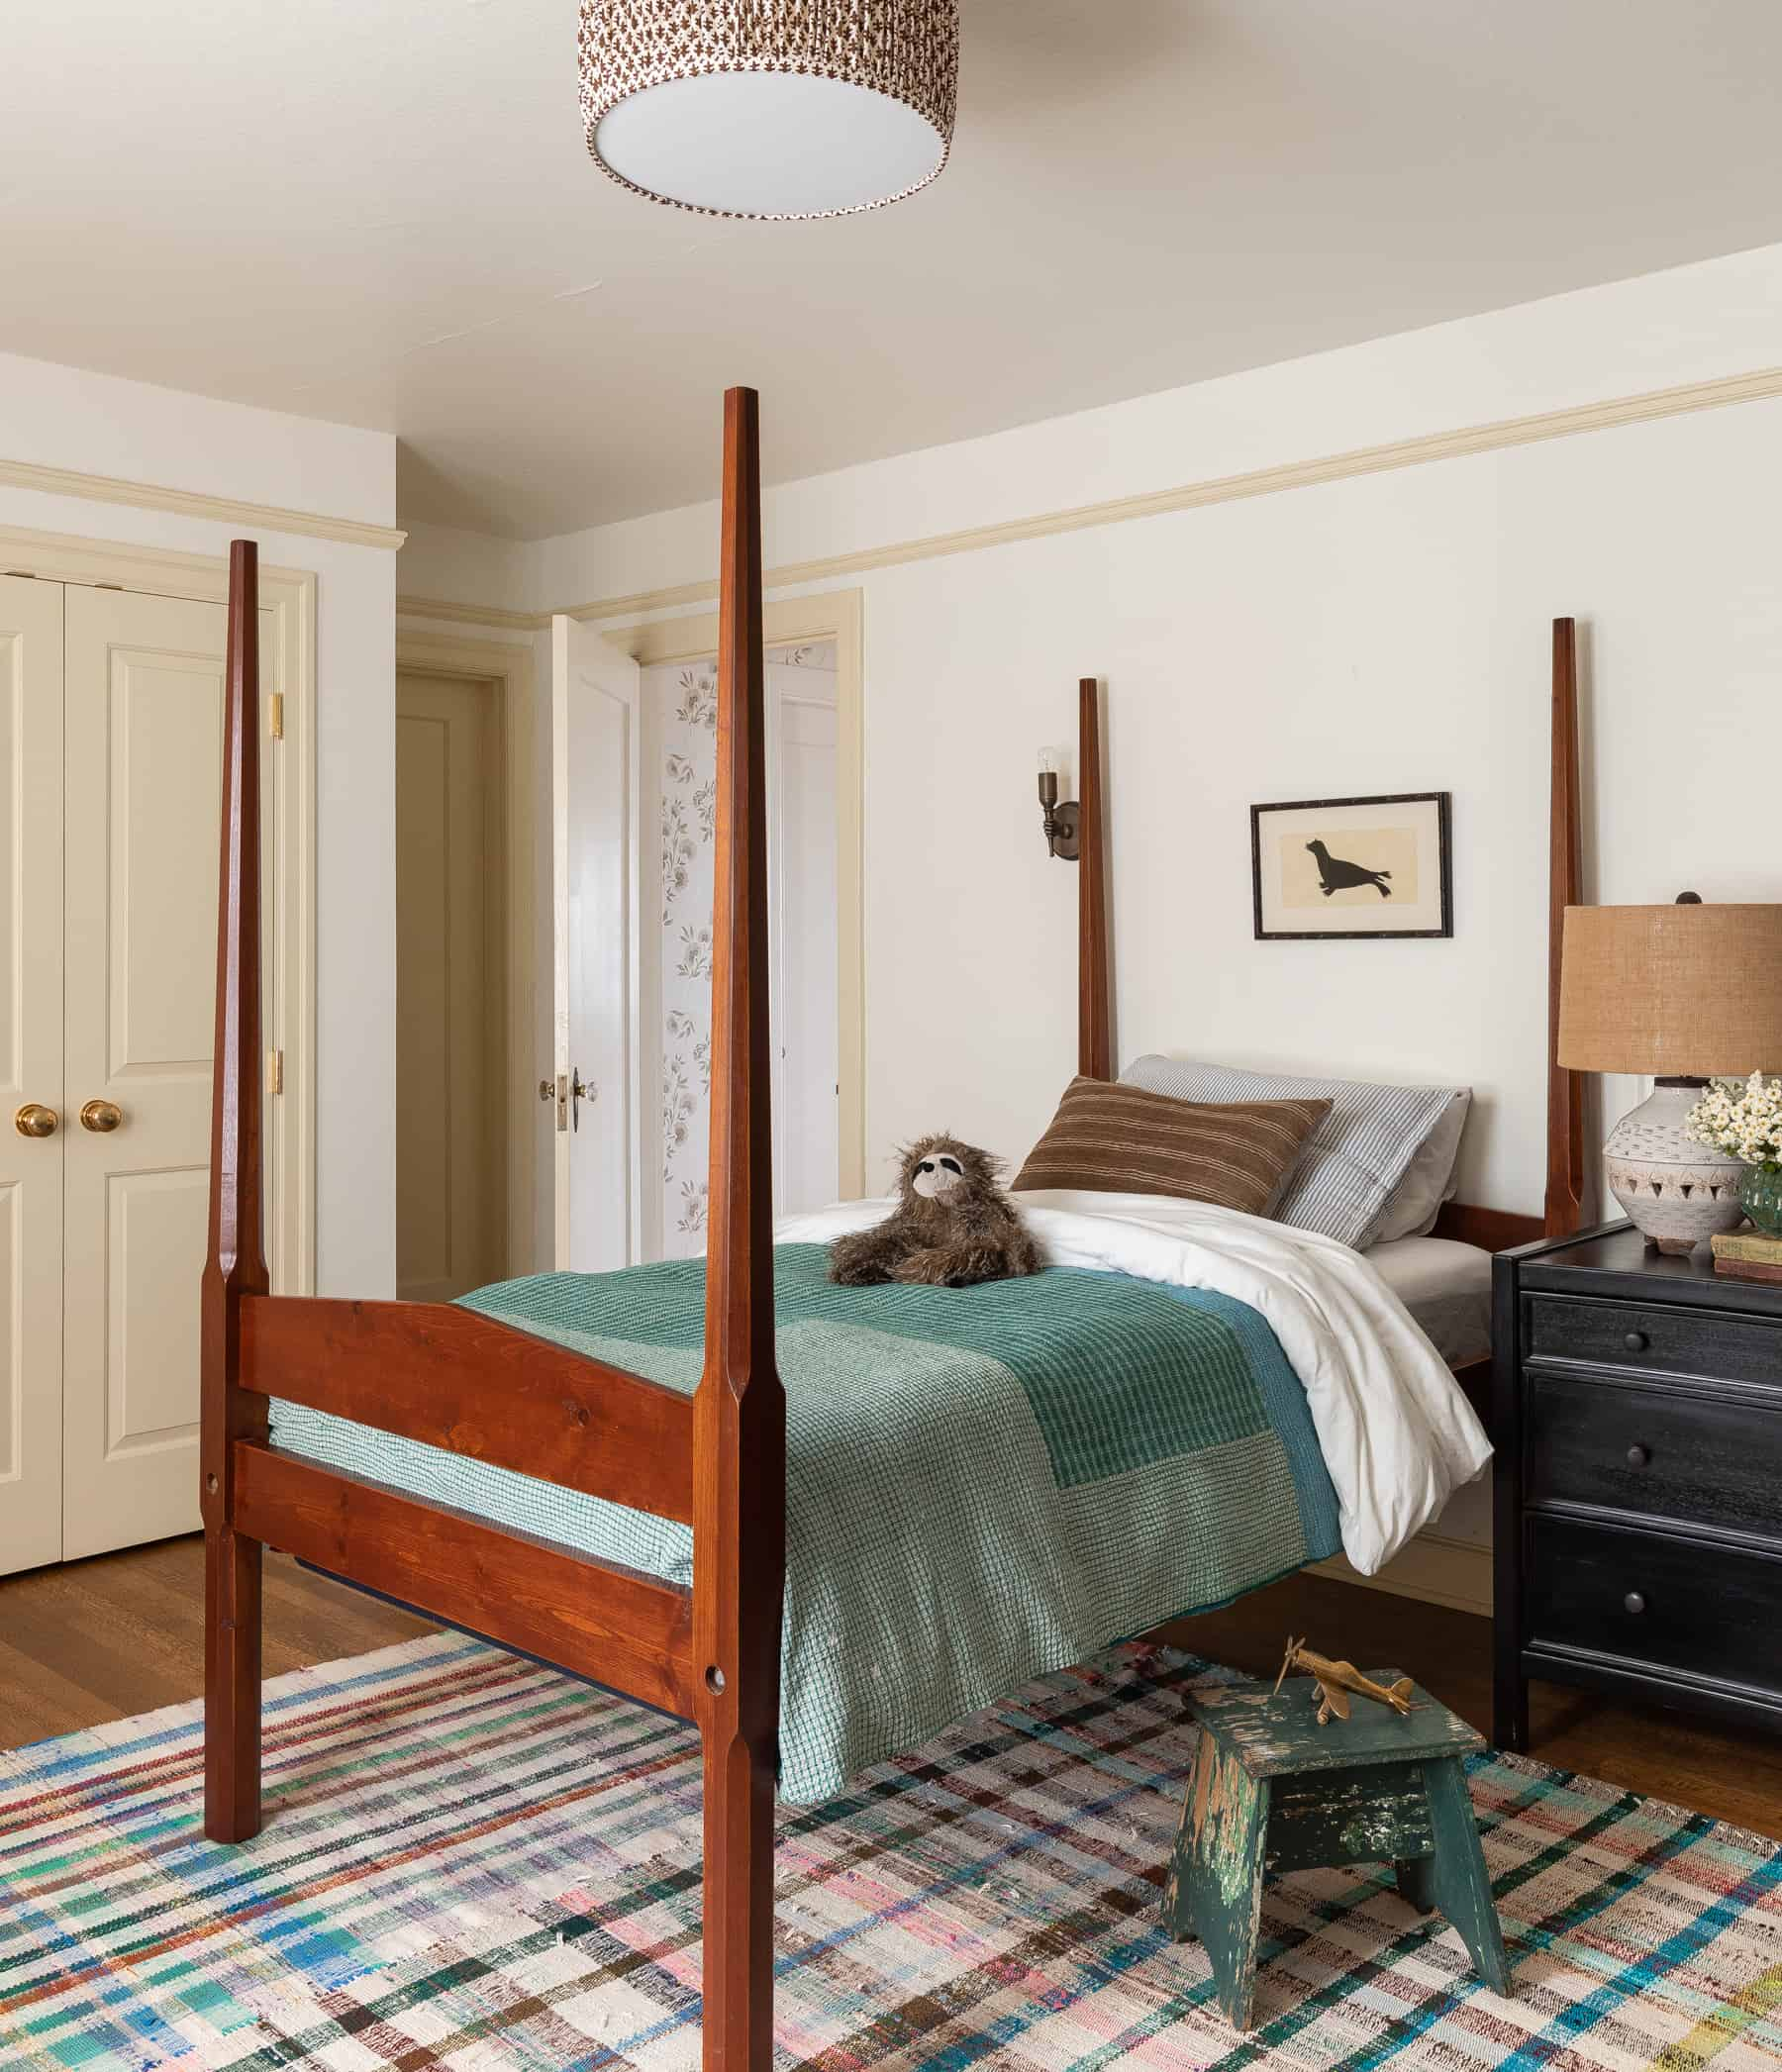 Heidi Caillier Design Seattle Interior Designer Kids Bedroom Matching Twin Beds Vintage Wood Beds Plaid Rug Kantha Blankets Custom Lampshade Yellow Painted Trim Nickey Kehoe Hand Sconce Heidi Caillier